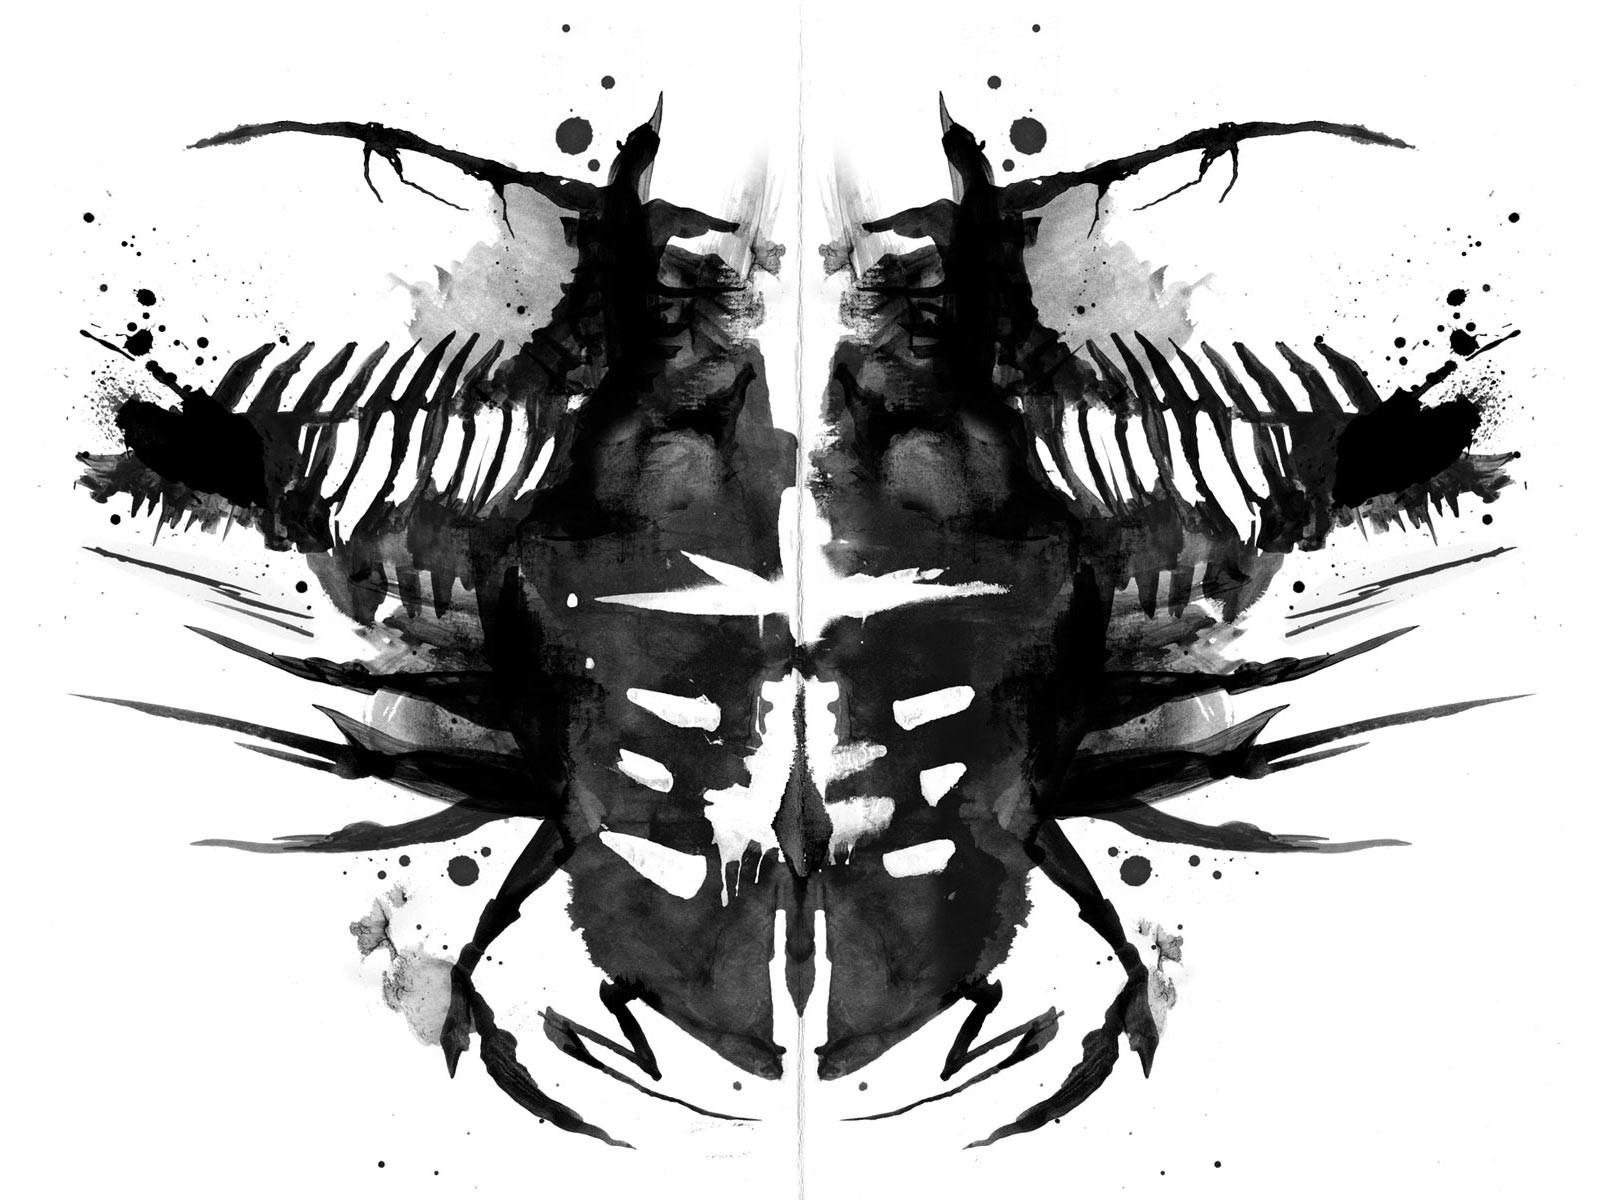 Dead Space Video Games Rorschach Test Wallpapers Hd